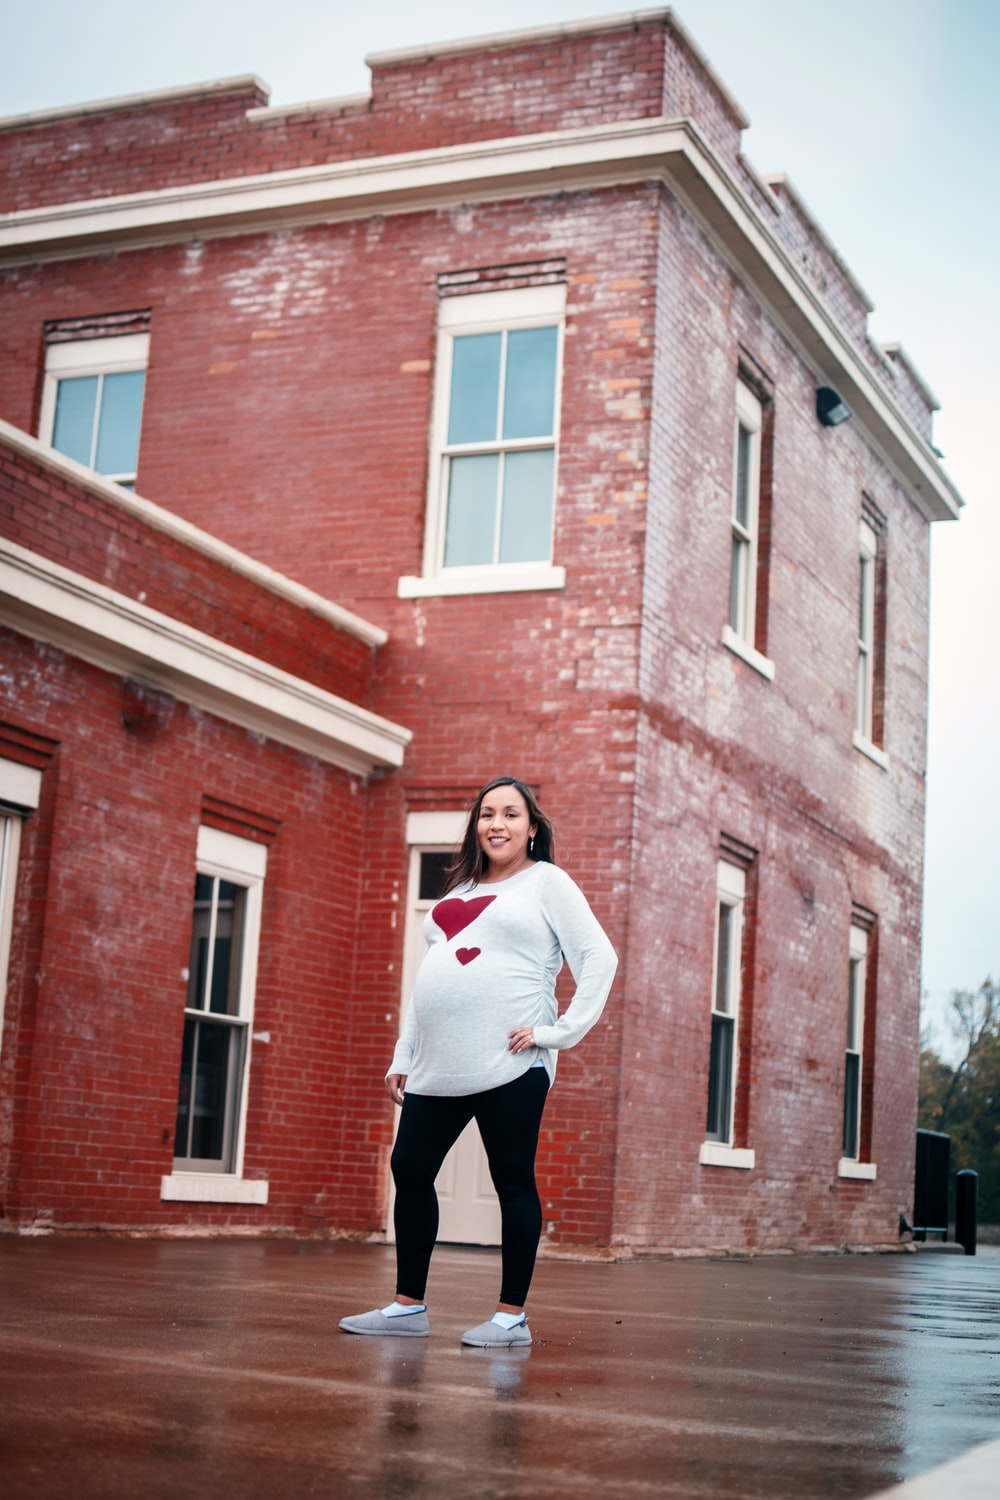 woman in white long sleeve shirt and black pants standing in front of brown brick building